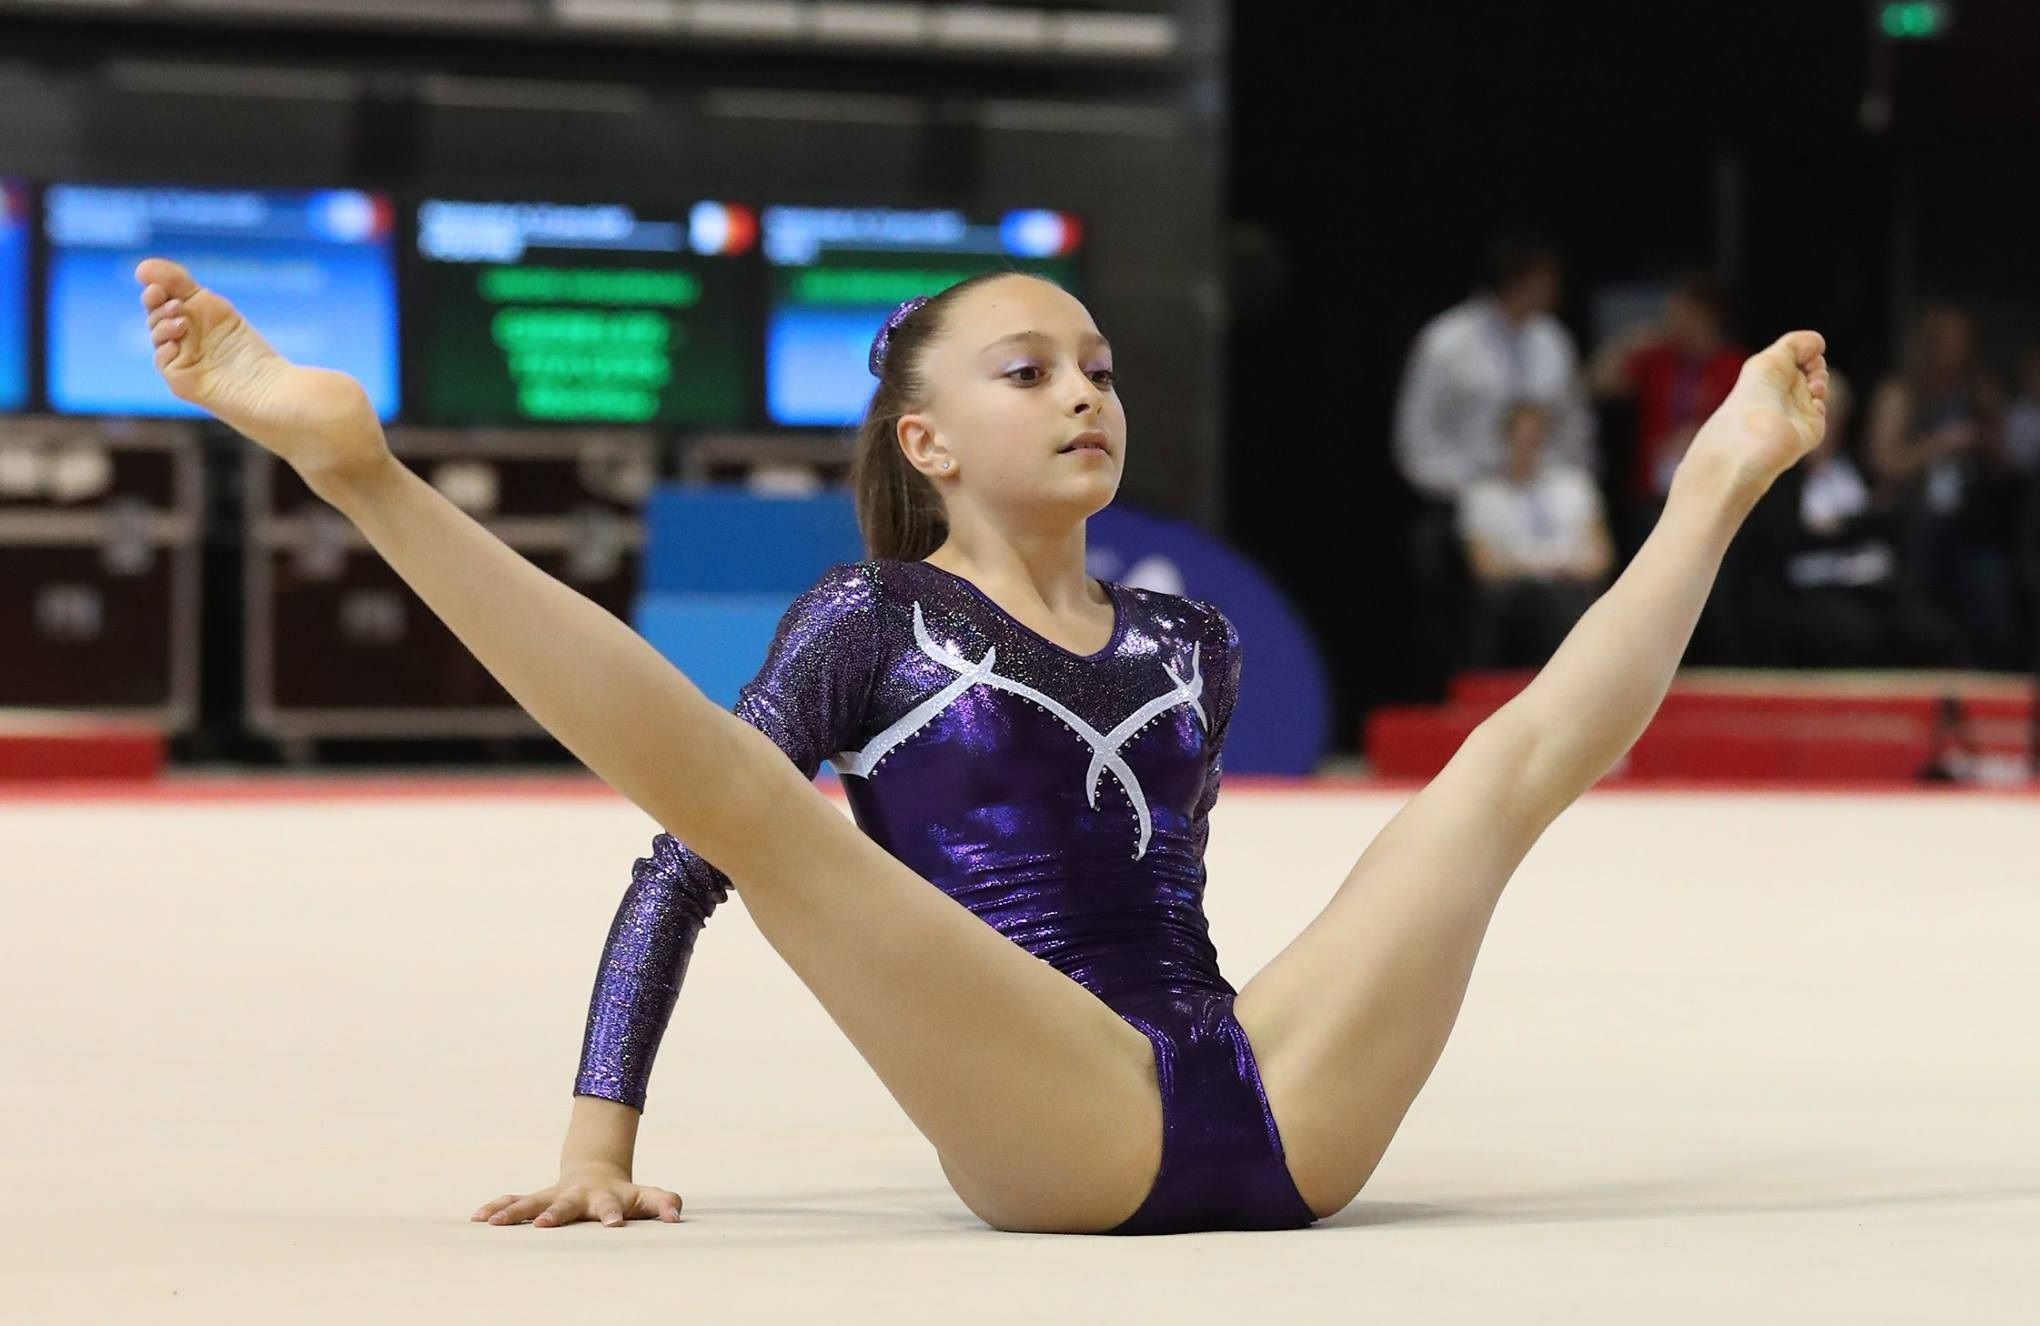 Young teen gymnast gallery #8